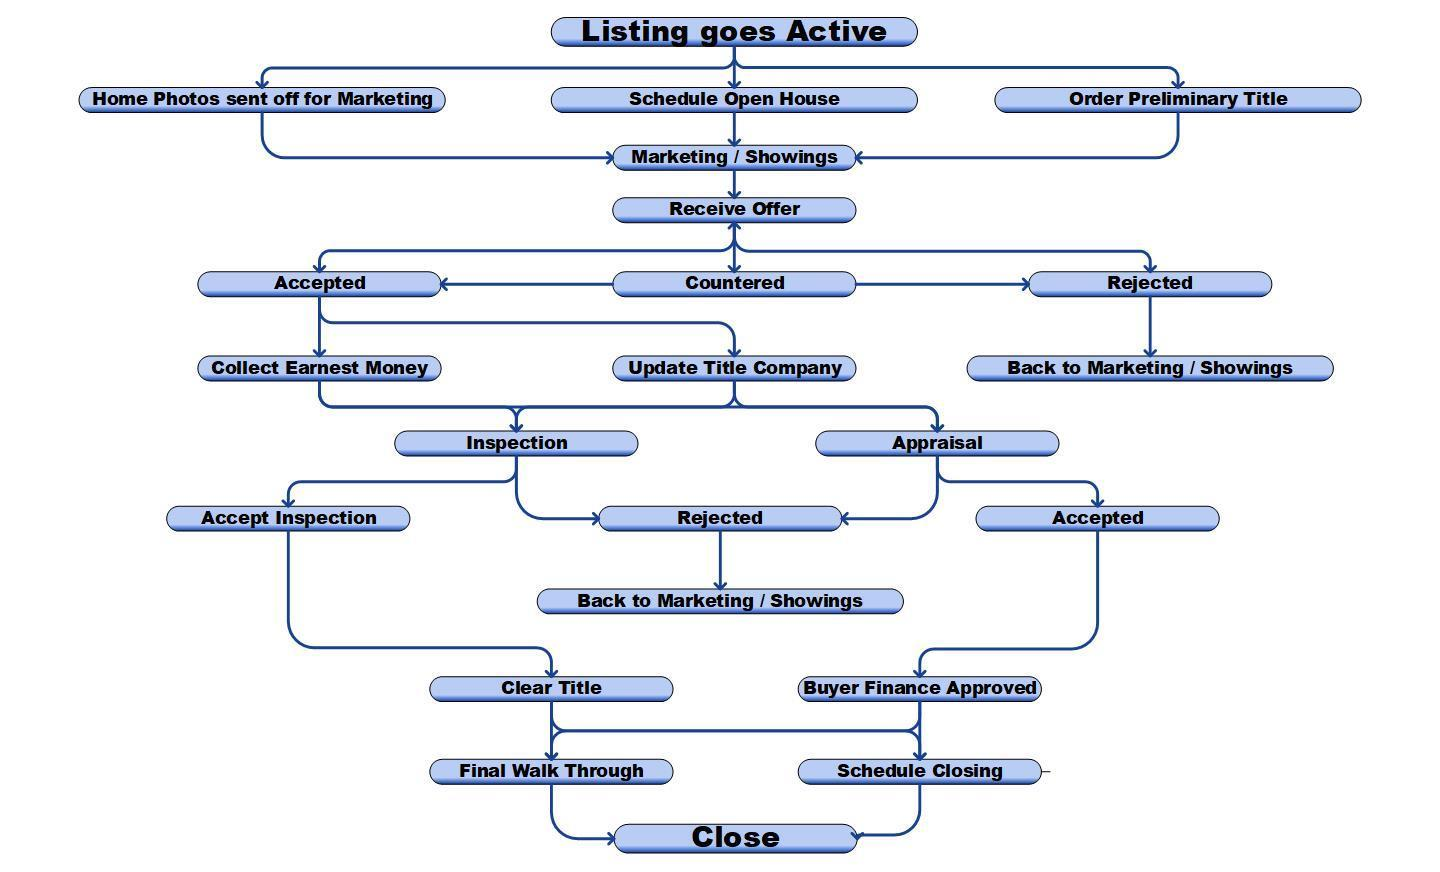 Home Seller Process Workflow Chart